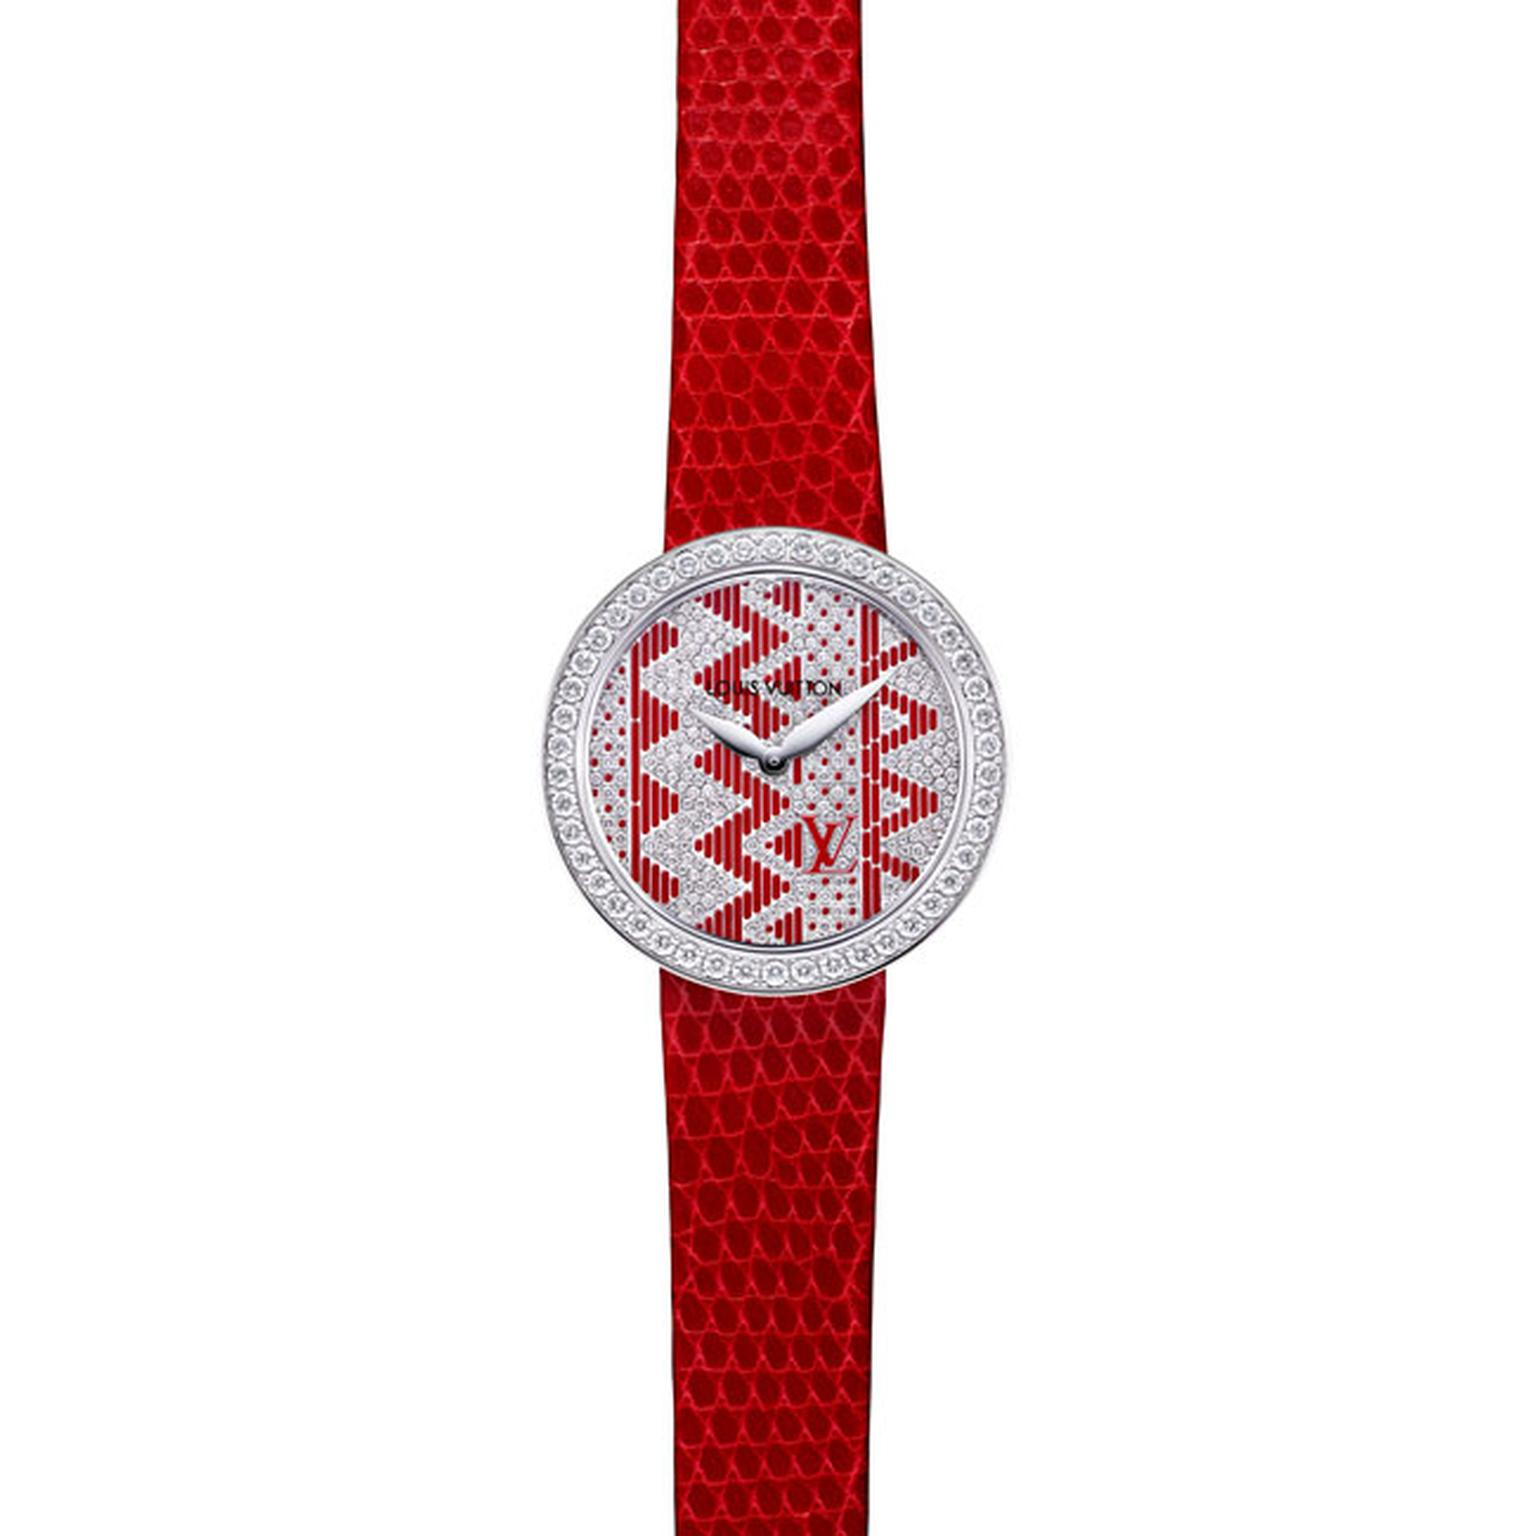 Louis Vuitton Joaillerie Chevron ladies watch in red_main